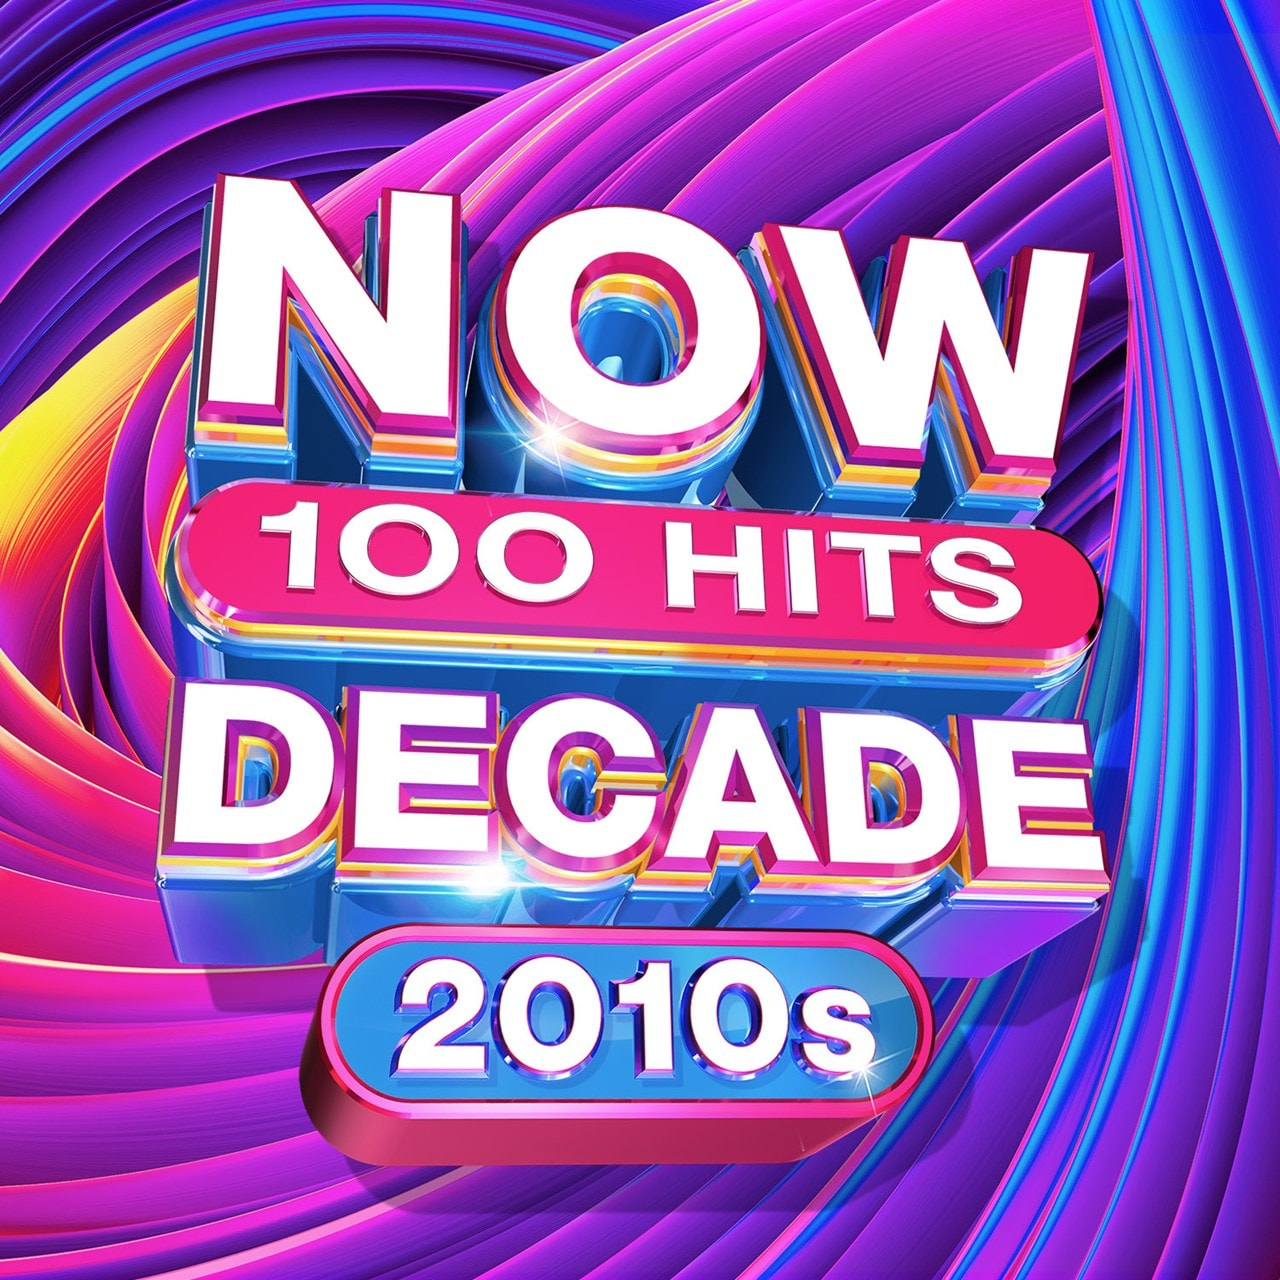 NOW 100 Hits: The Decade 2010s - 1